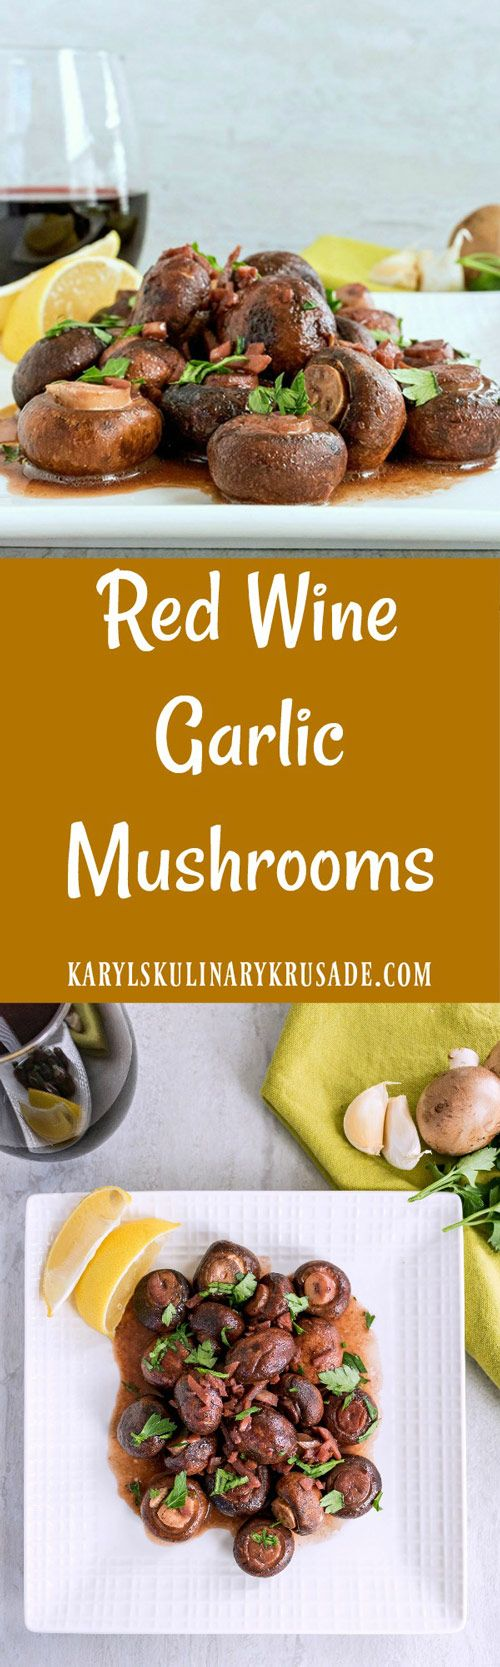 Red Wine Garlic Mushrooms. Simple, elegant and delicious side dish or light vegetarian lunch. The wine and garlic add so much flavor to the mushrooms, this will become a favorite for you and your family #mushrooms #garlic #wine #cookingwithwine #redwine #sides #sidedish #side #karylskulinarykrusade #meatlessmonday